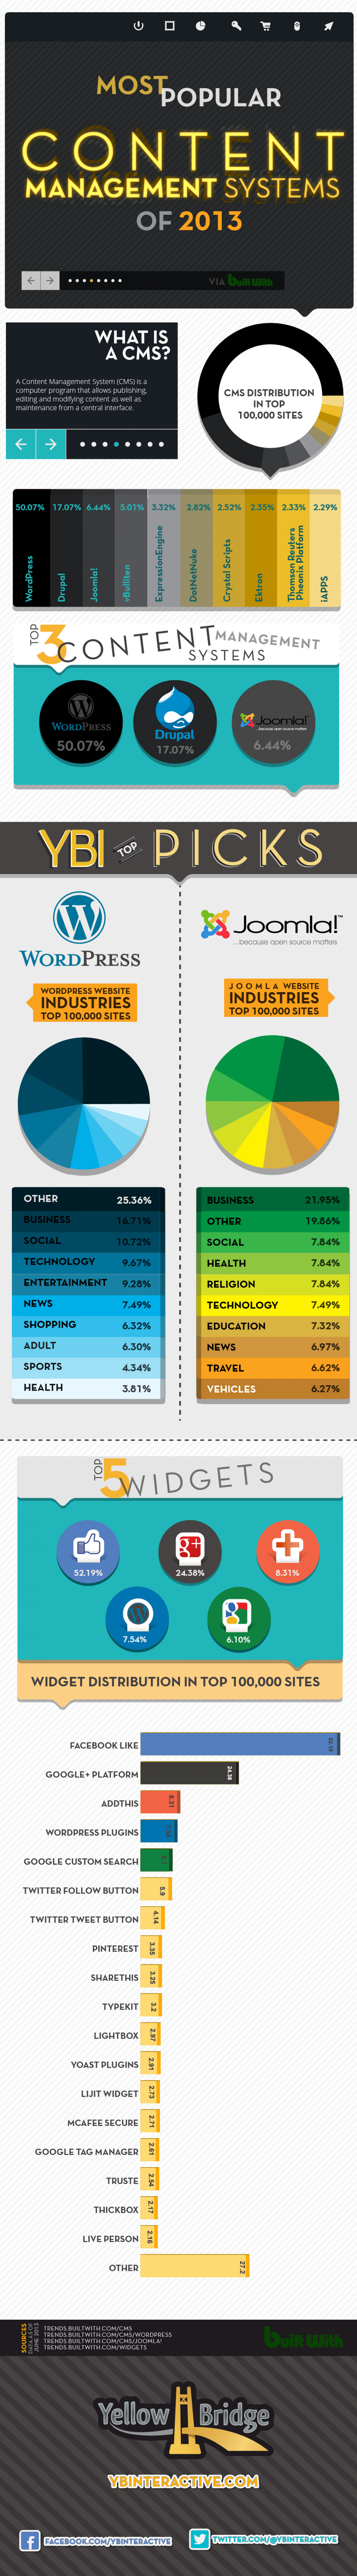 Most Popular Content Management Systems Of 2013 Infographic